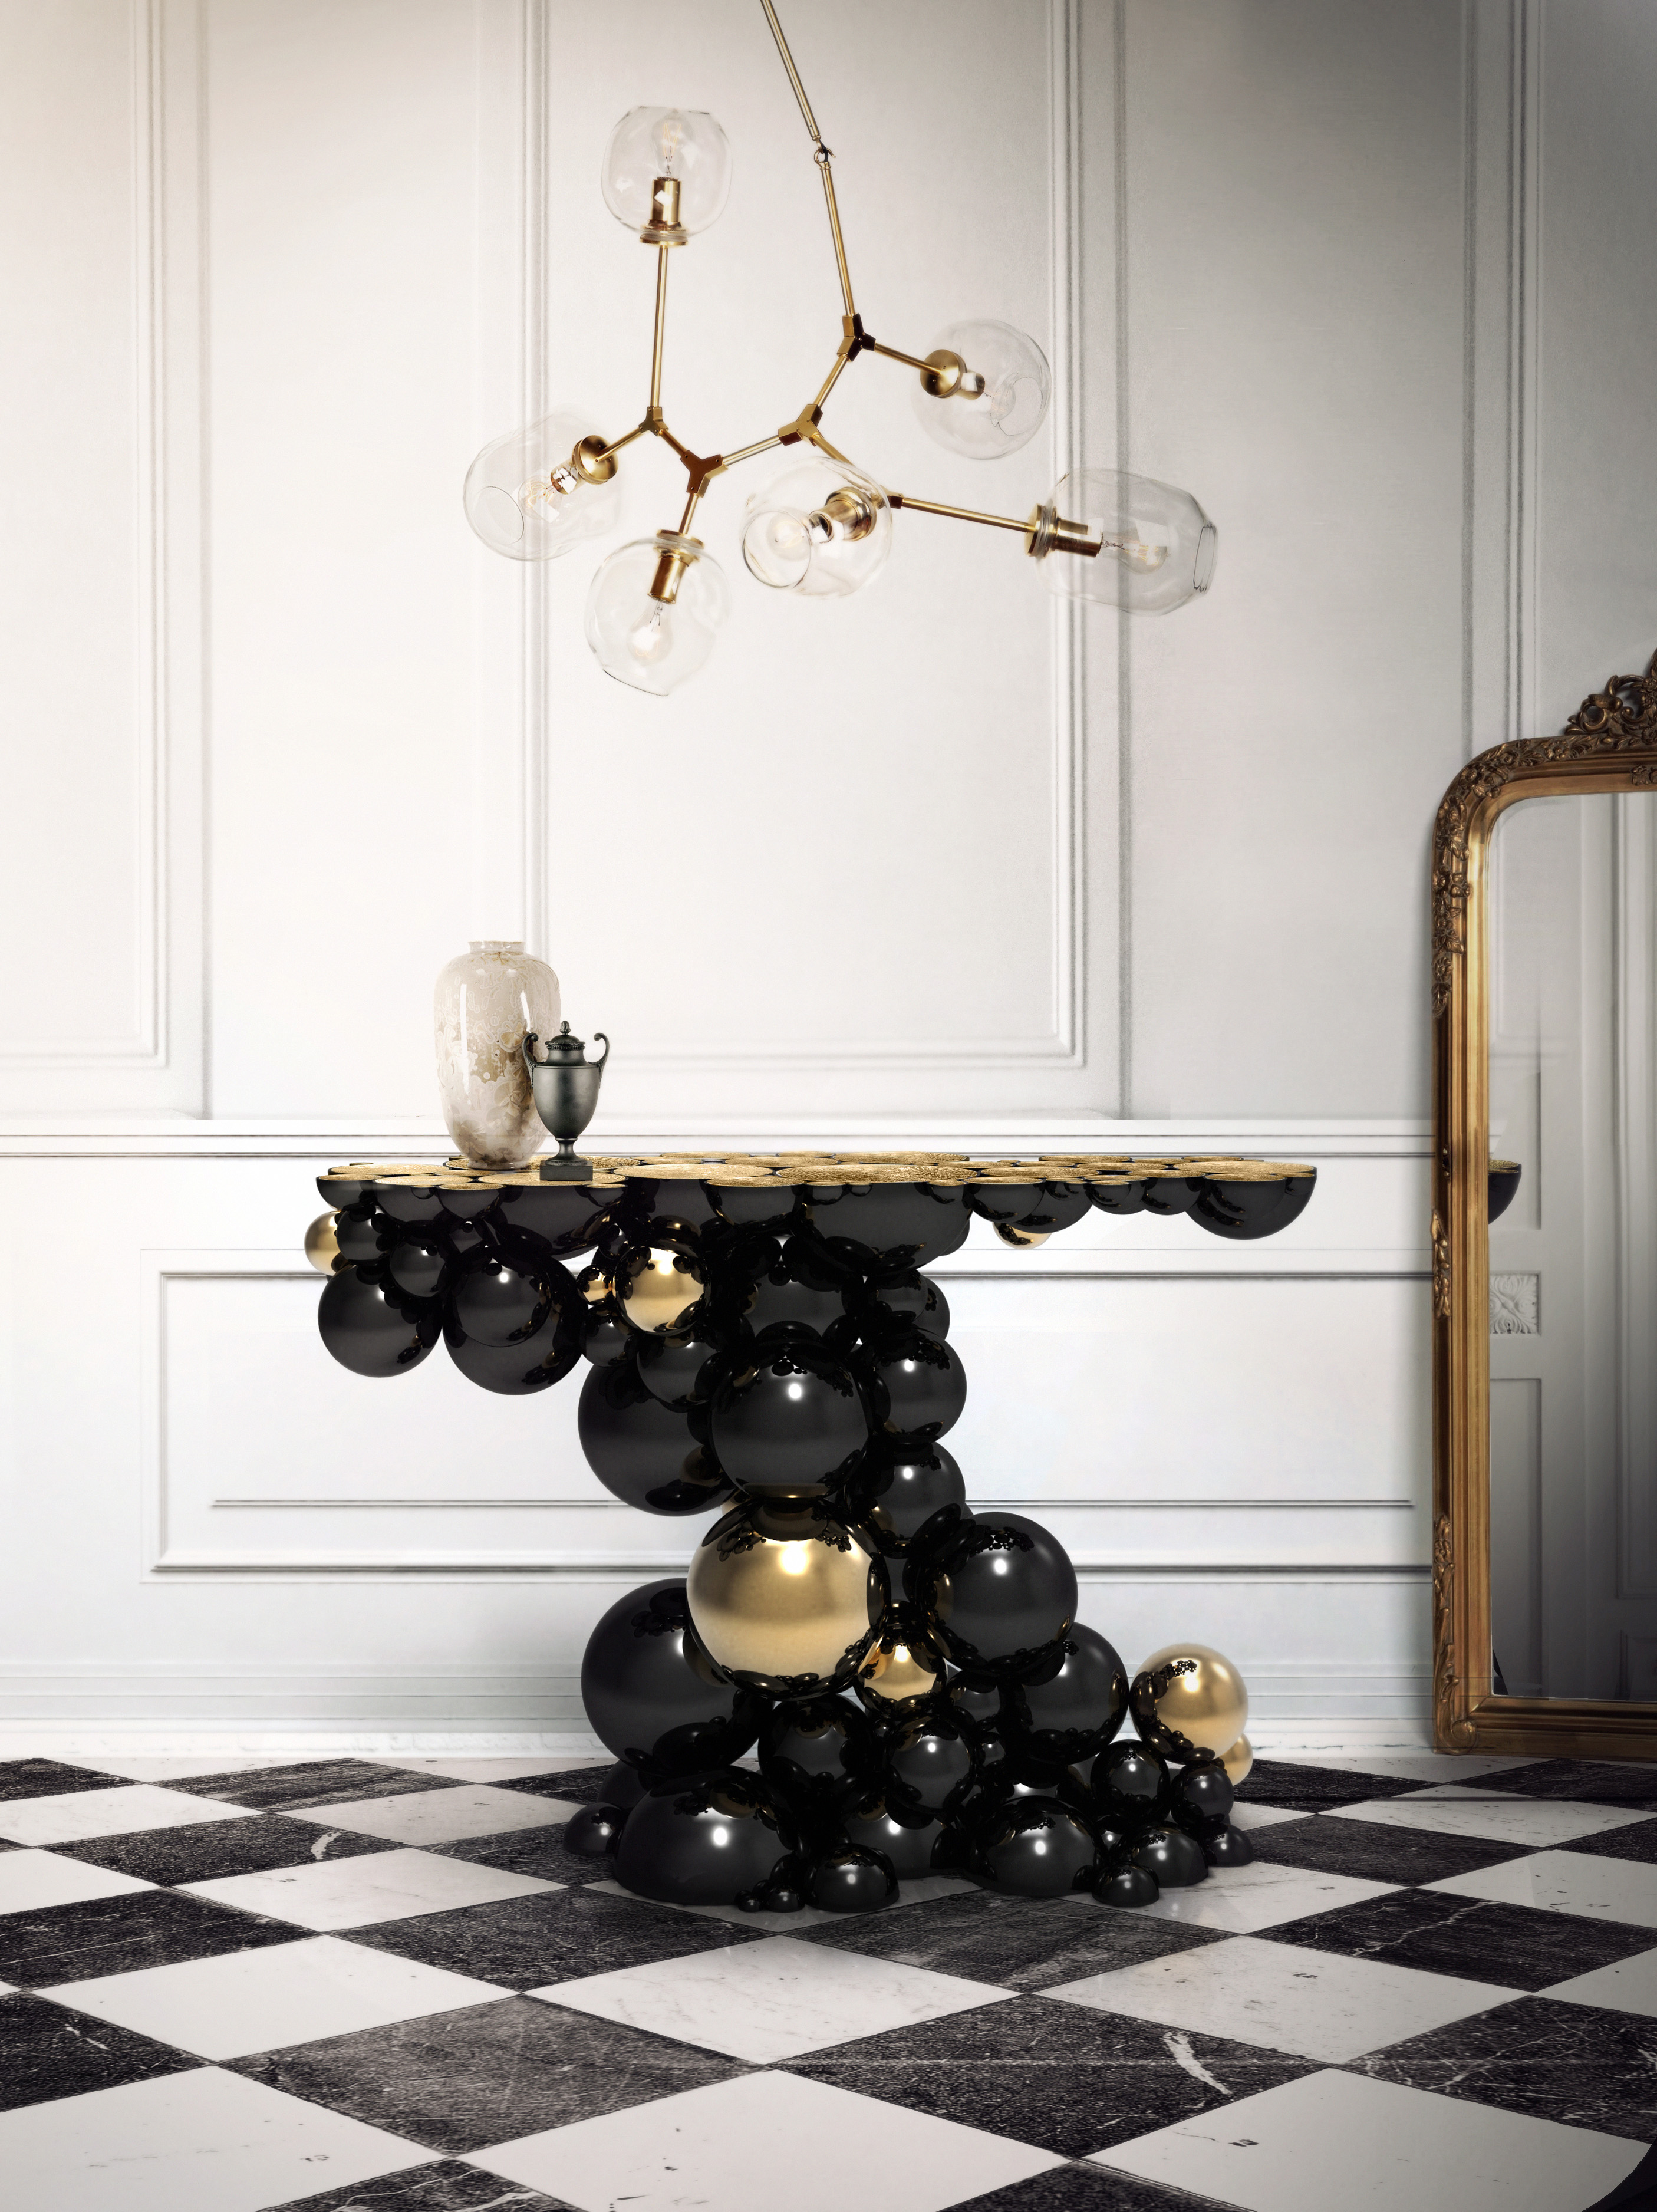 boca do lobo Boca do Lobo's Anniversary – 15 Years Meets 15 Exclusive Pieces newton console limited edition boca do lobo 01 boca do lobo The Newton Console by Boca do Lobo, A Revolutionary Statement Piece newton console limited edition boca do lobo 01